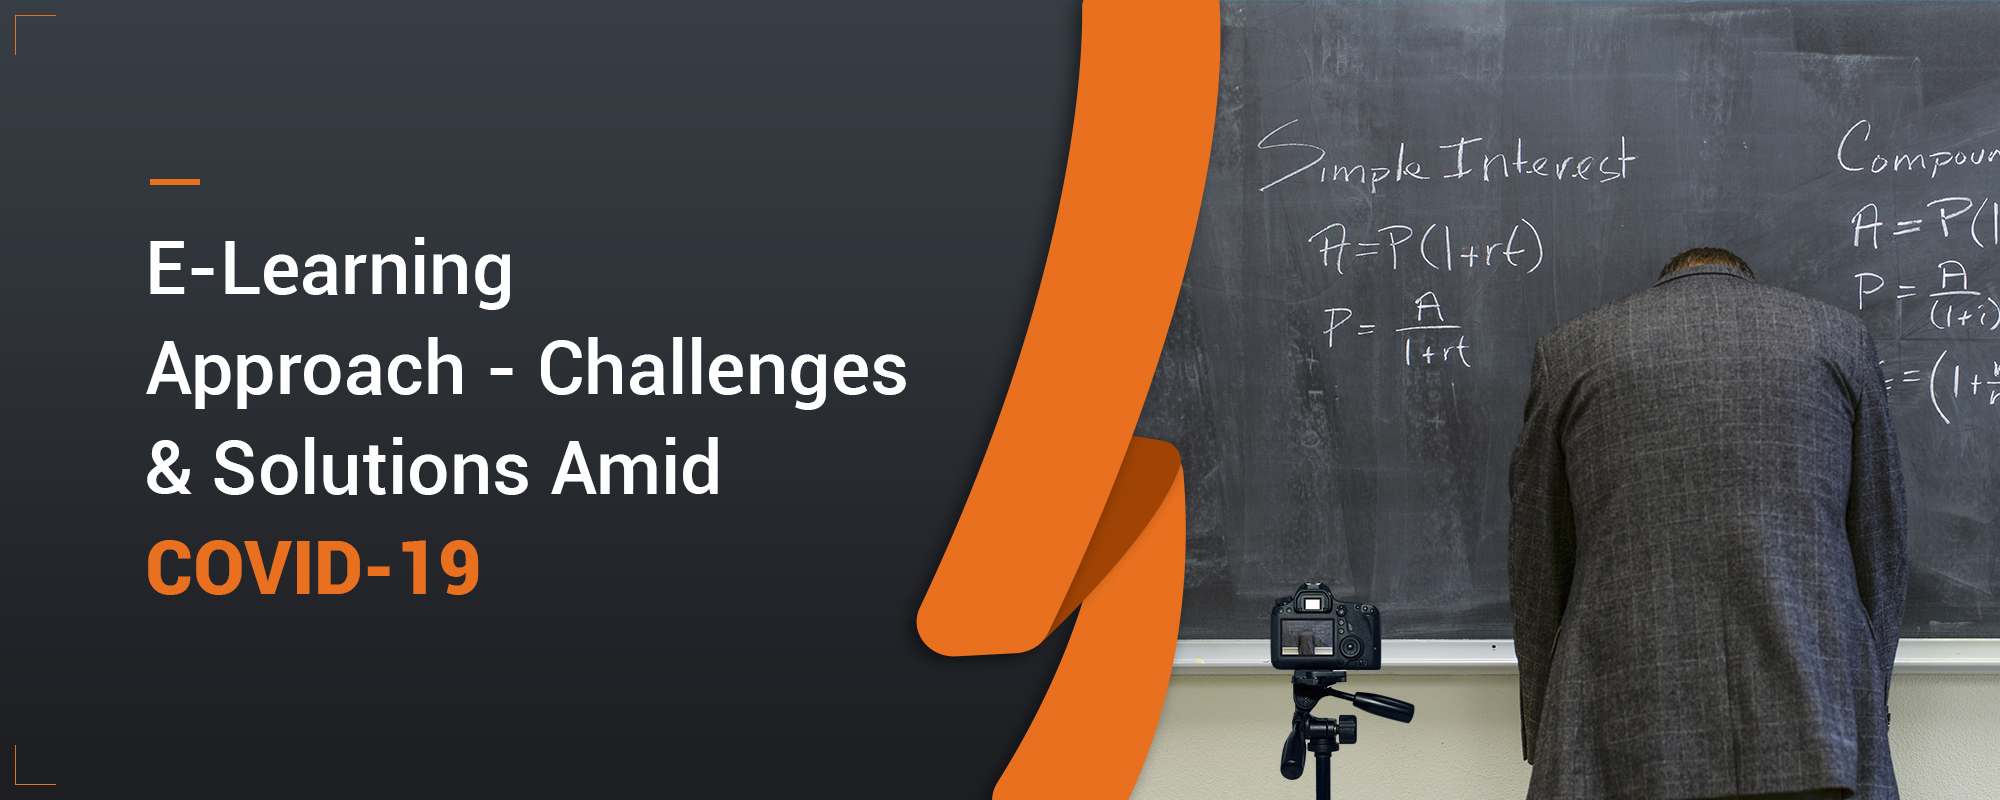 Challenges Faced by Educational Institutes or Tutors During COVID-19 and How To Overcome Them